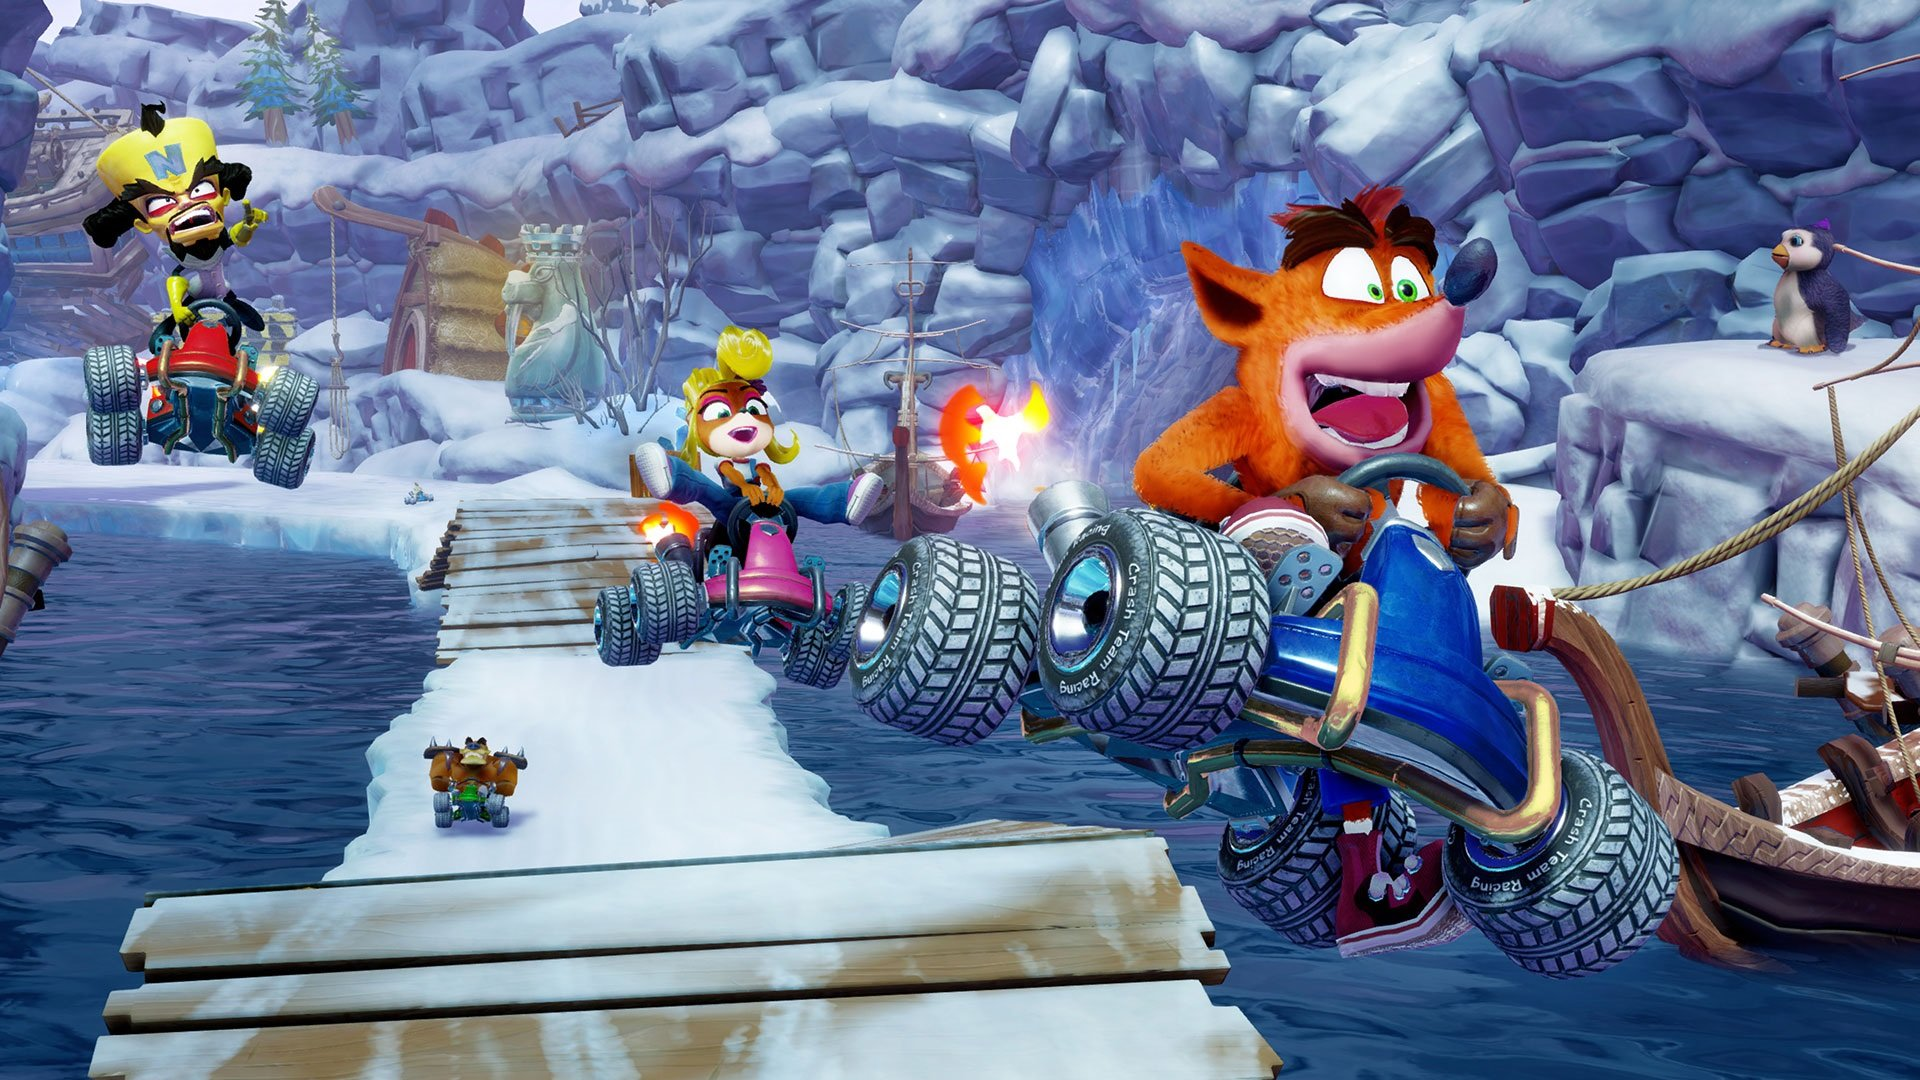 Several character skins can be purchased at the Pit Stop in exchange for Wumpa Coins in Crash Team Racing Nitro-Fueled.